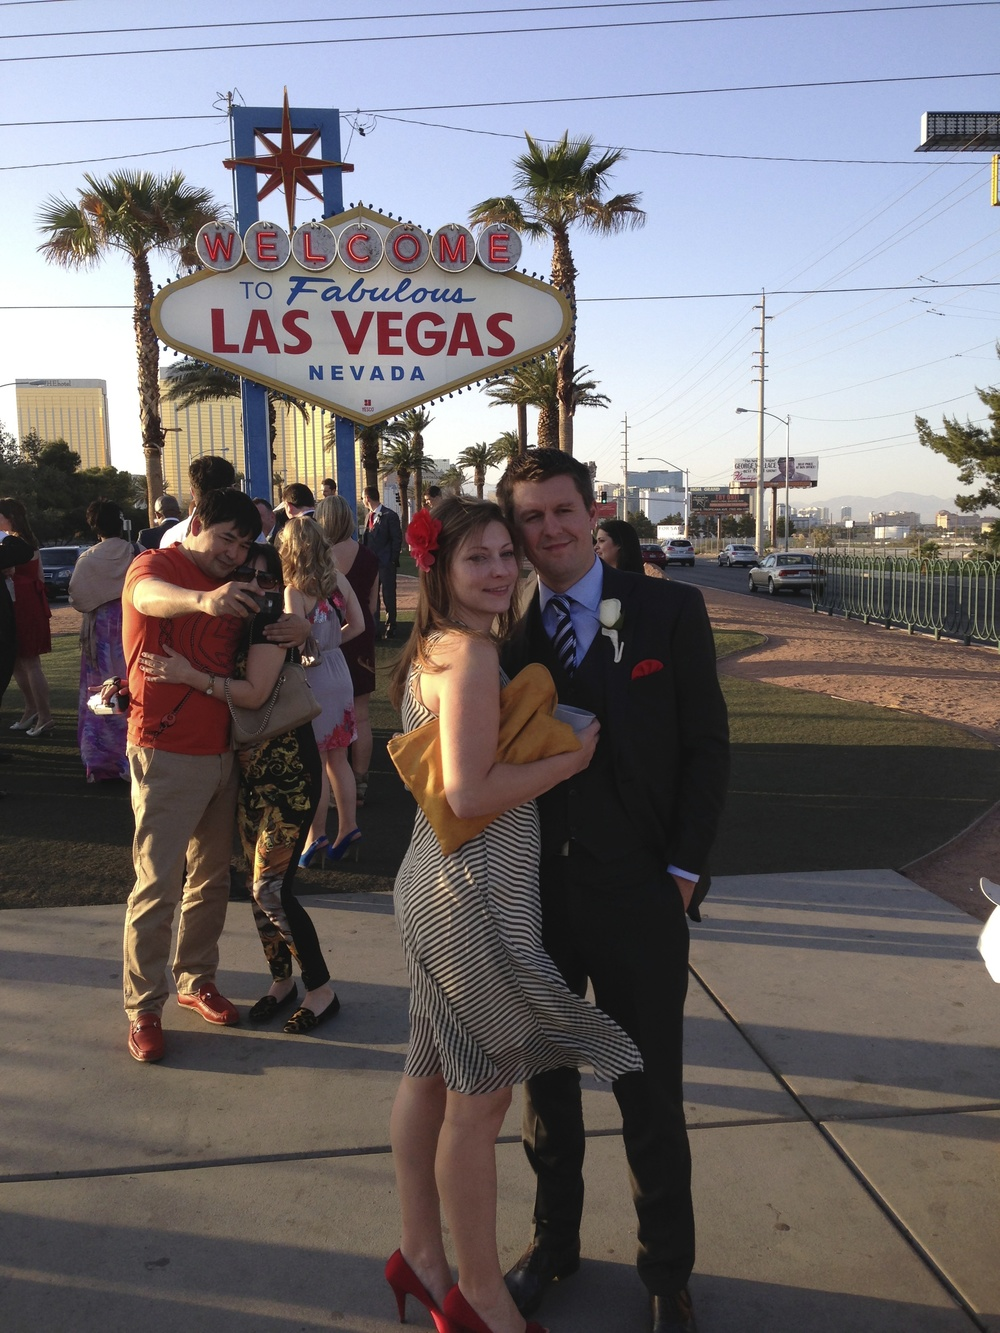 Joe and I strike a pose at the famous Las Vegas sign